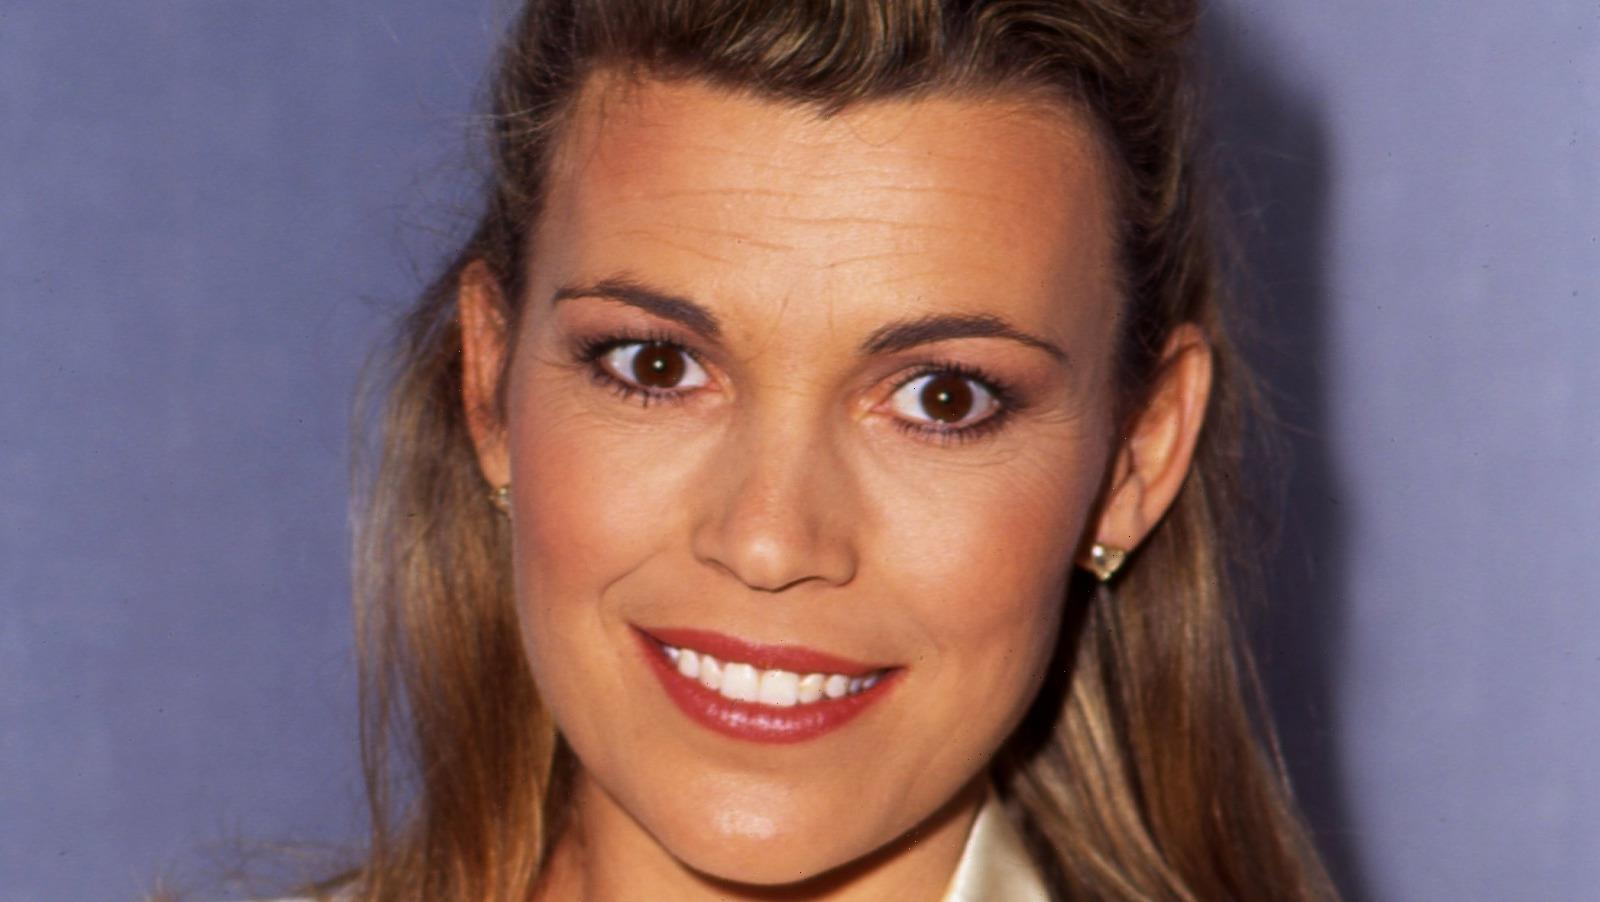 Vanna White's Transformation Is Seriously Turning Heads